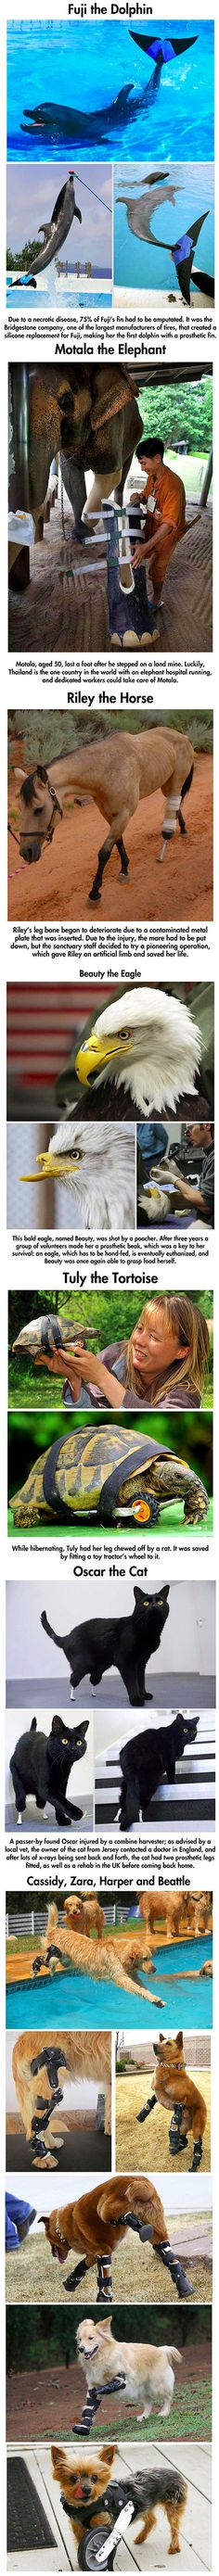 Amazin, yet real, stories of animals saved by prosthetics.